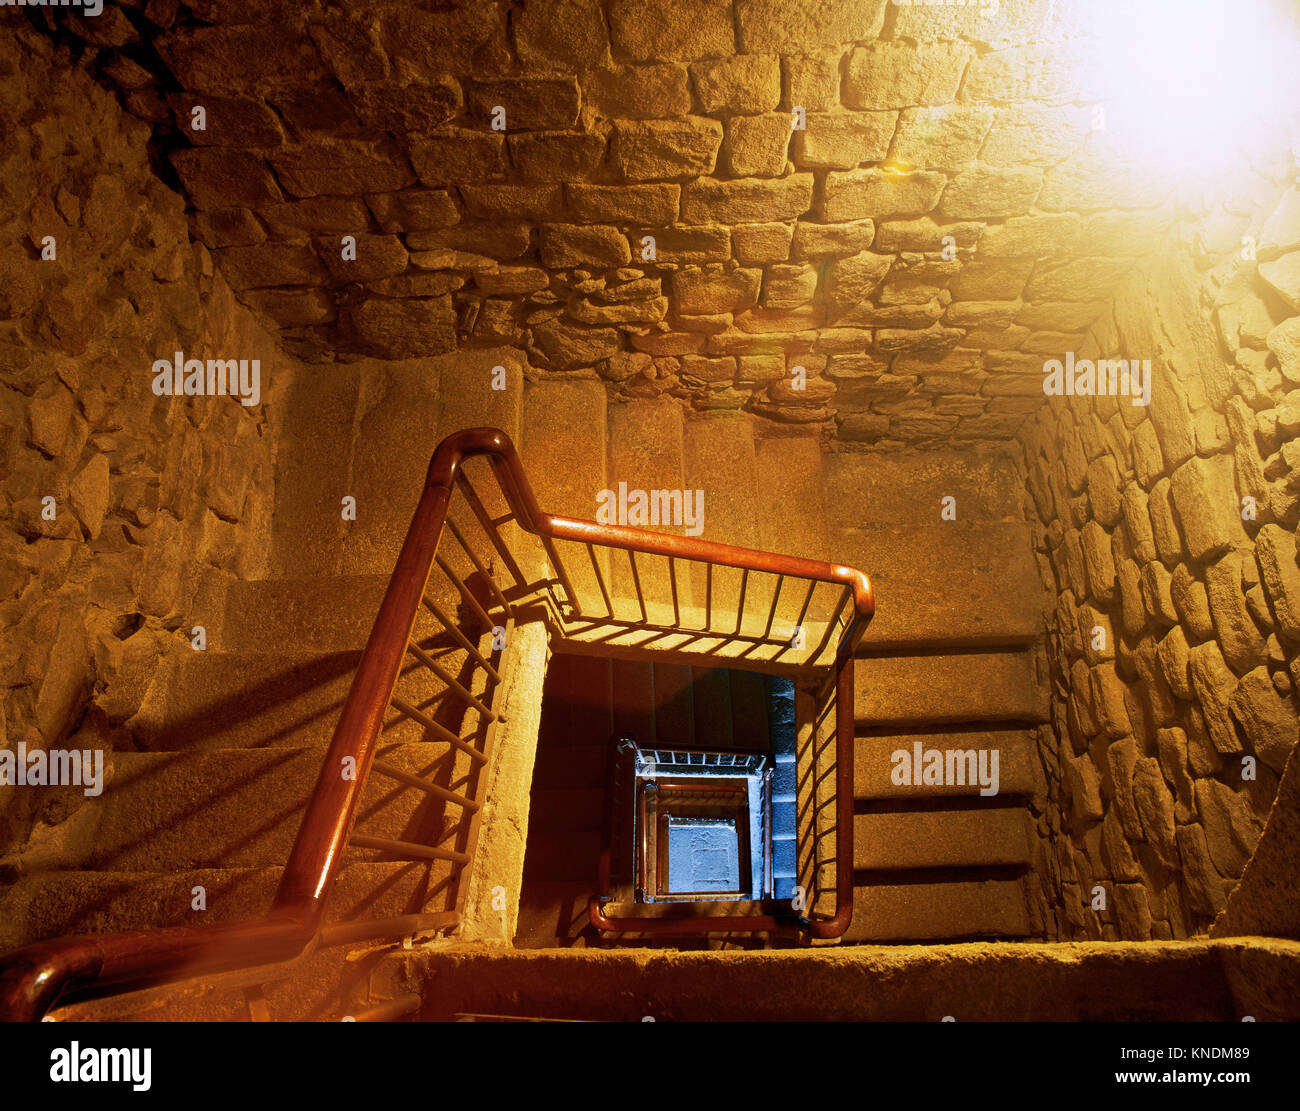 Tower of Hercules. 2nd century AD. Ancient Roman lighthouse. Restored in 1791 by Eustaqui Giannini. Interior. A - Stock Image